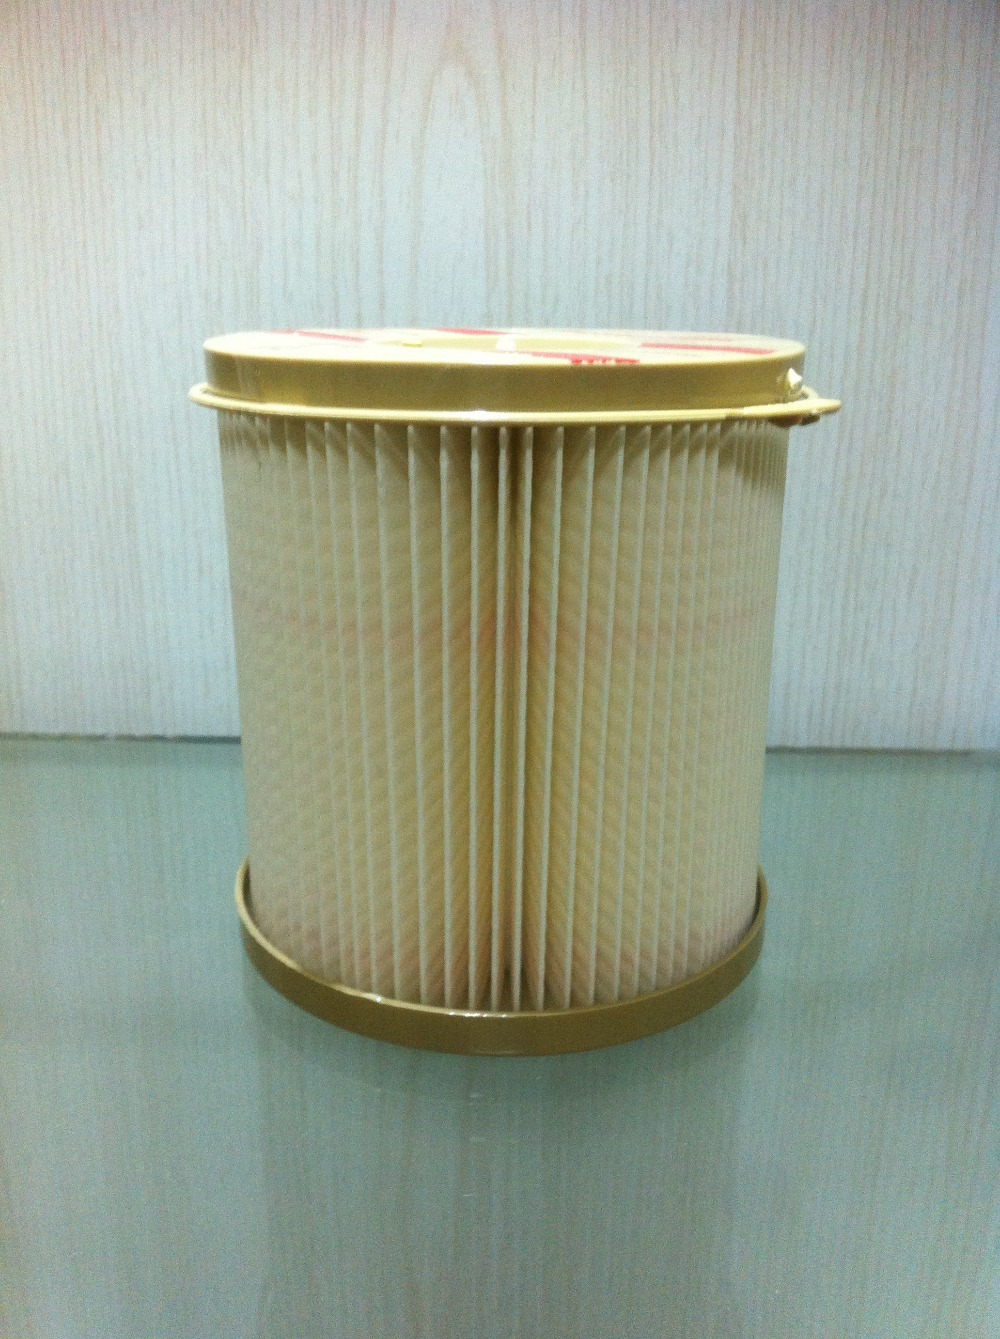 Buy Racor Parker No Orginal 2040pm Tm 900fg Turbine Fuel Filter Diesel Engine Water Separator Replacement Ship Element From Reliable